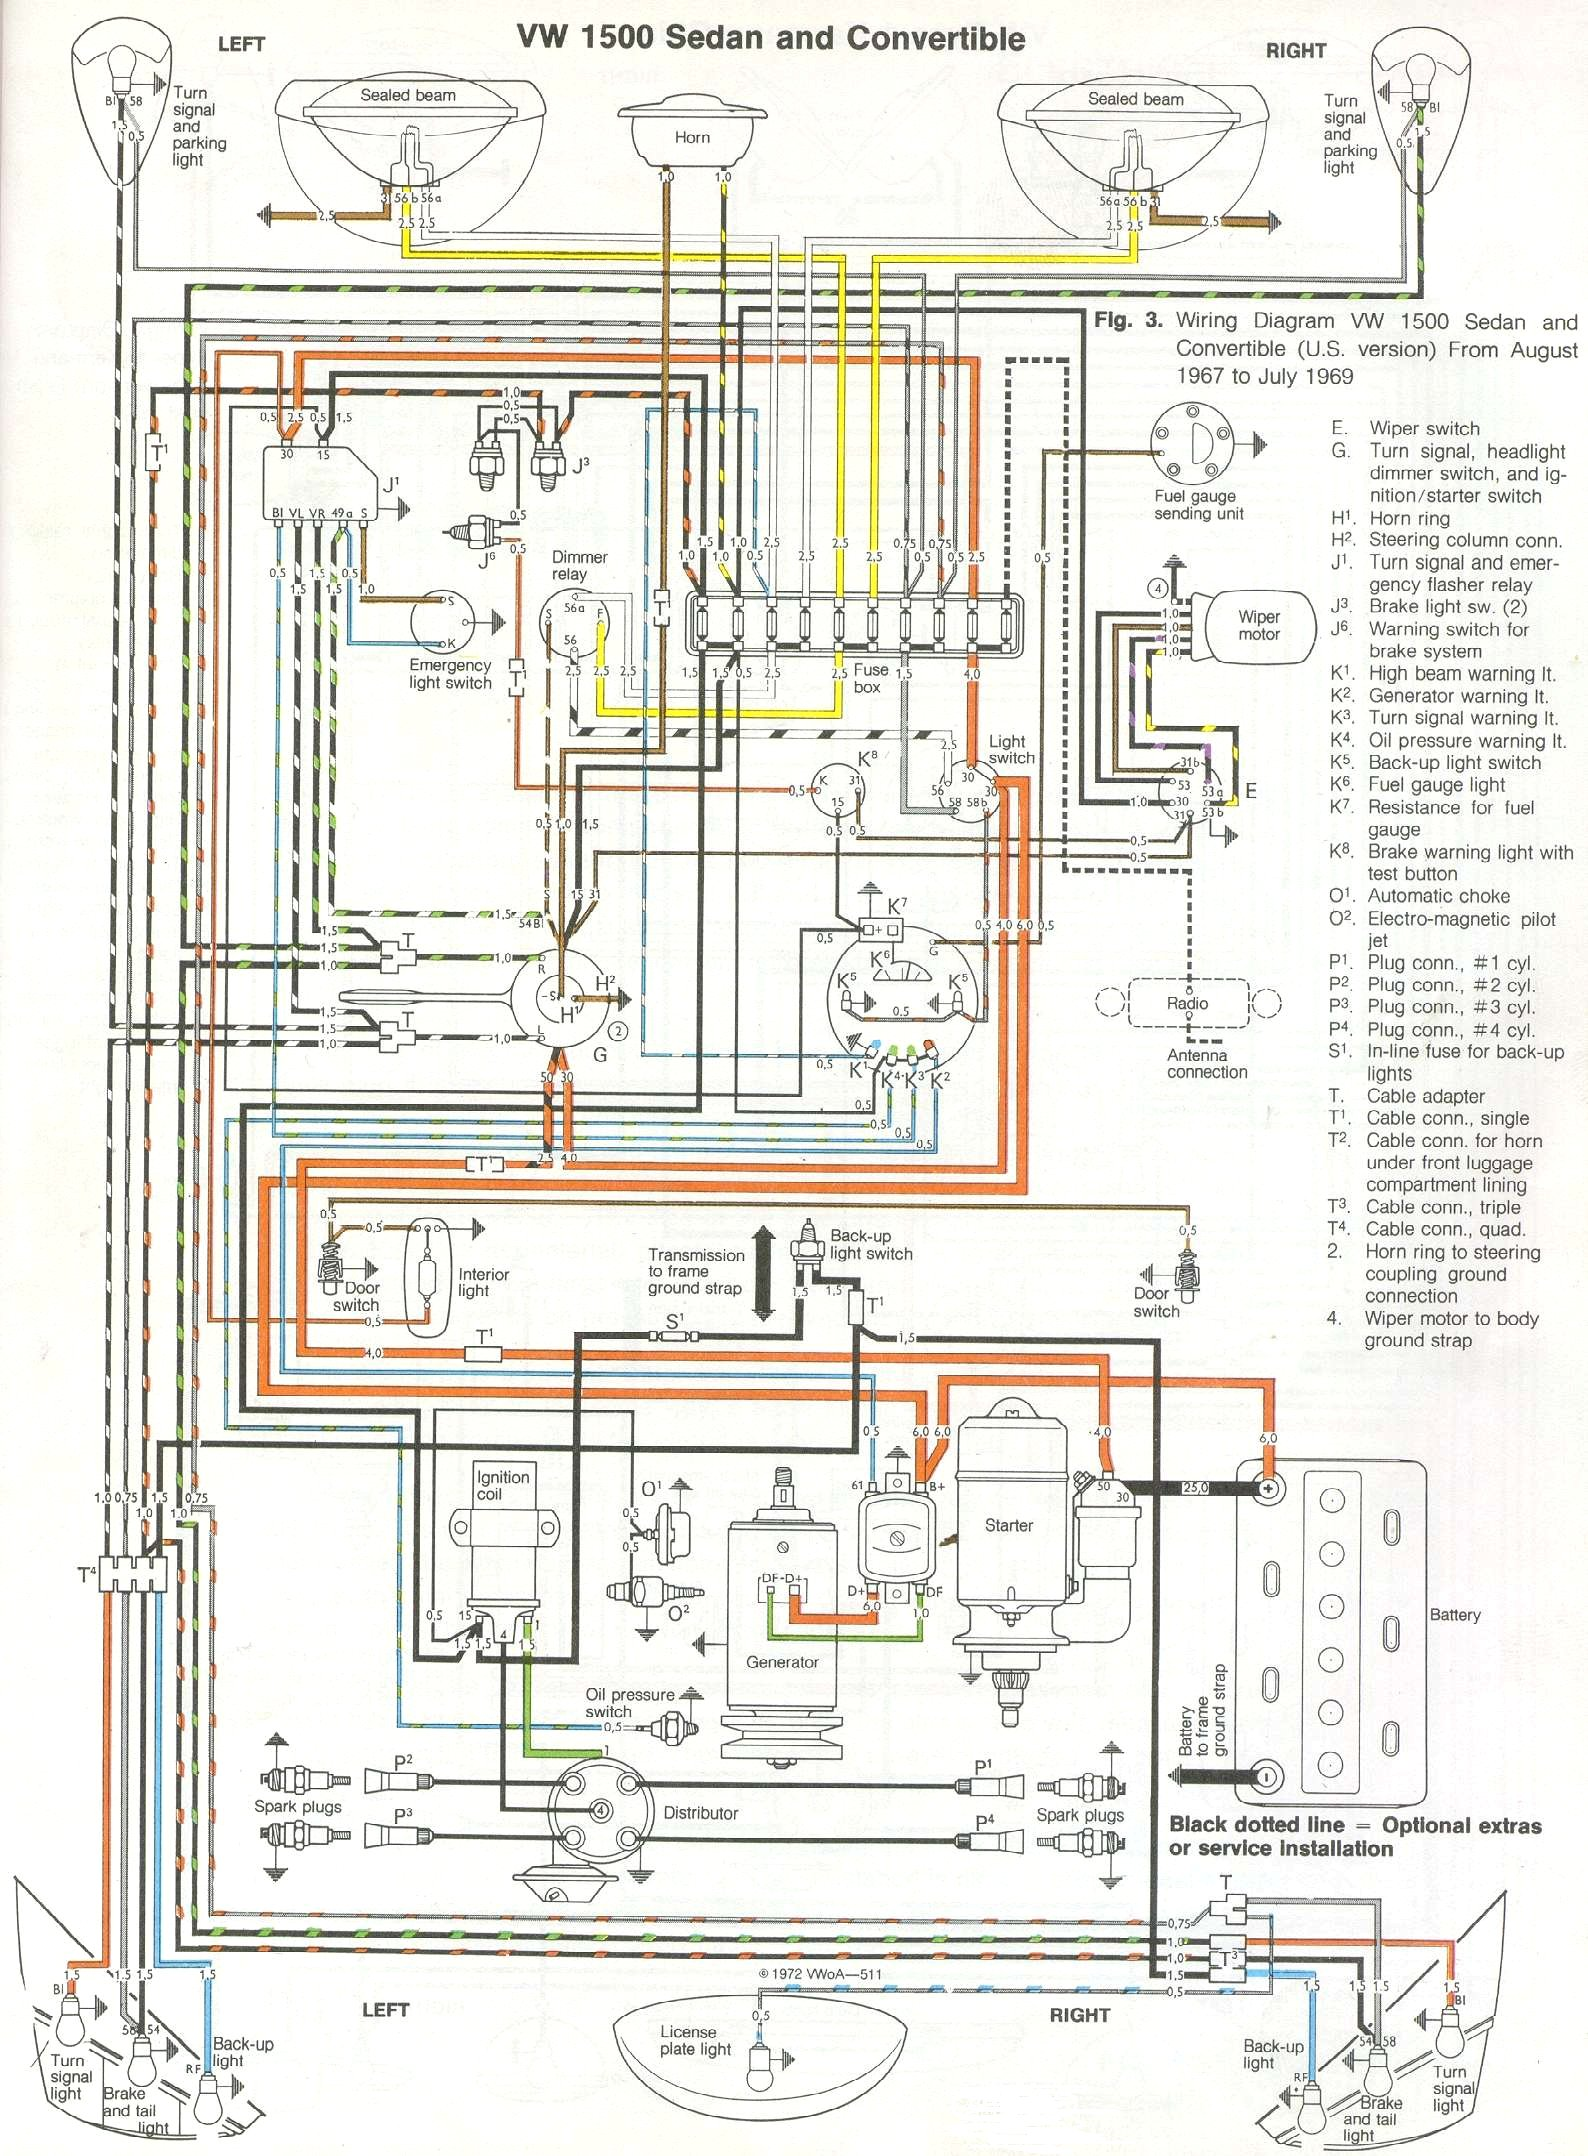 1969 vw wiring diagram general wiring diagram information u2022 rh velvetfive co uk